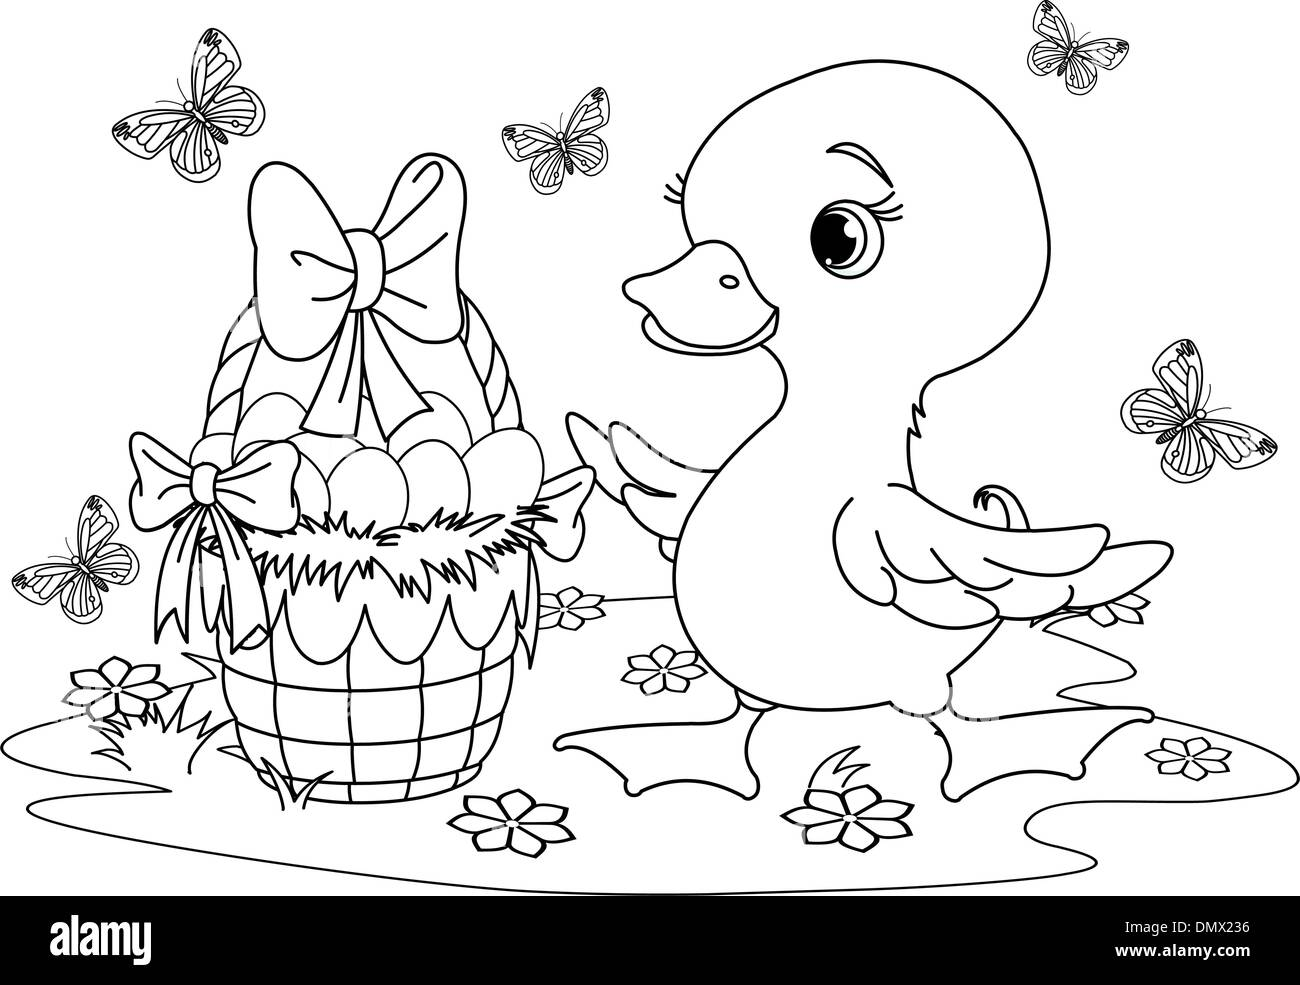 Easter duckling. Coloring page Stock Vector Art & Illustration ...